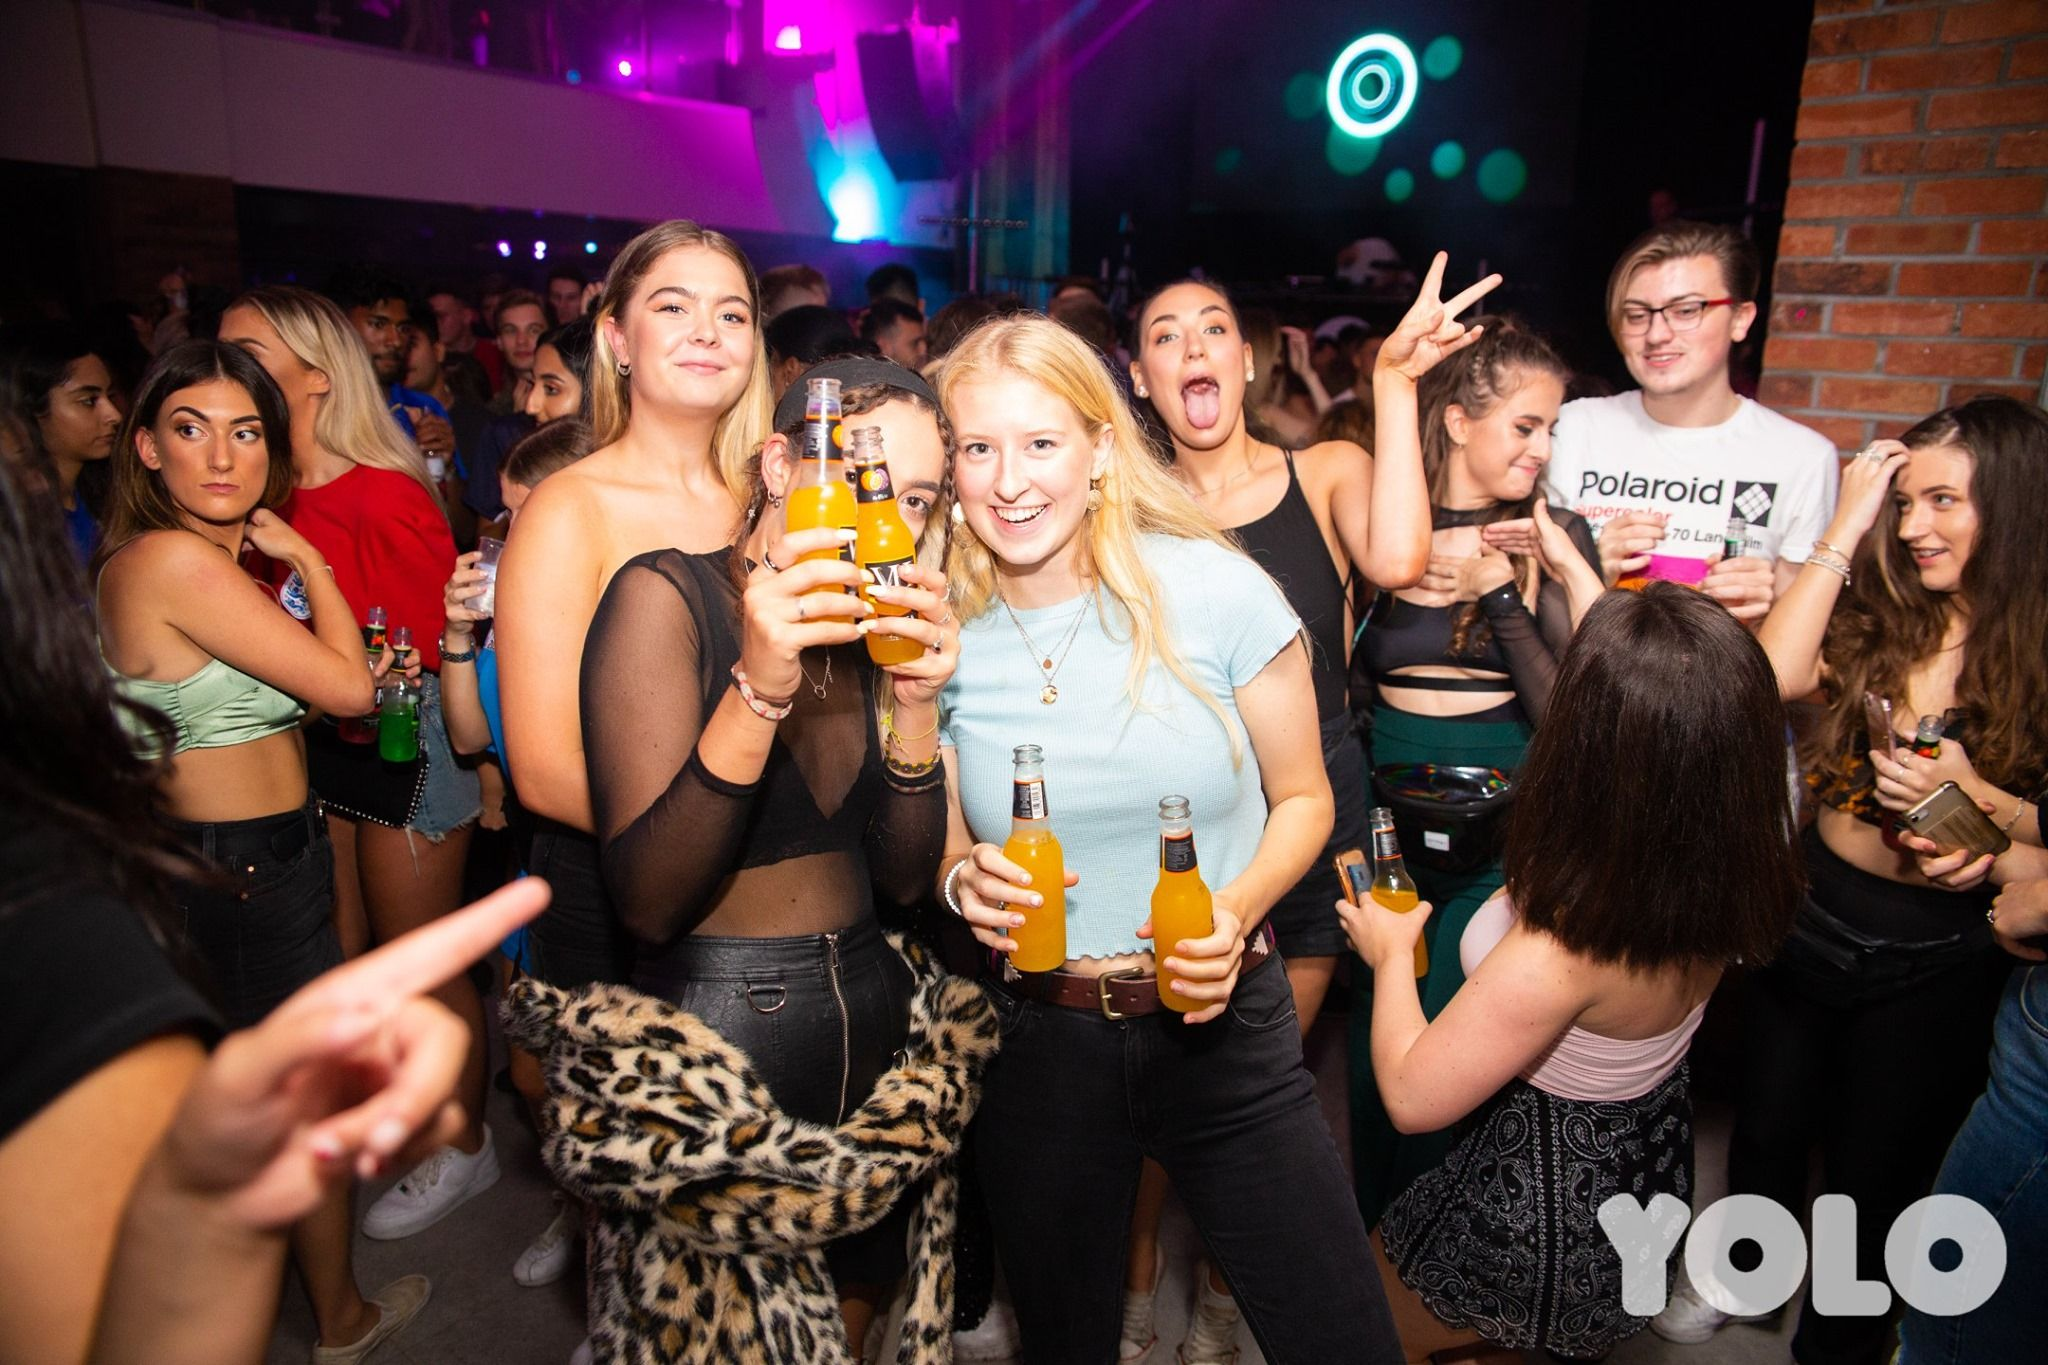 Image may contain: Night Club, Beverage, Drink, Beer, Alcohol, Club, Night Life, Person, Human, Party